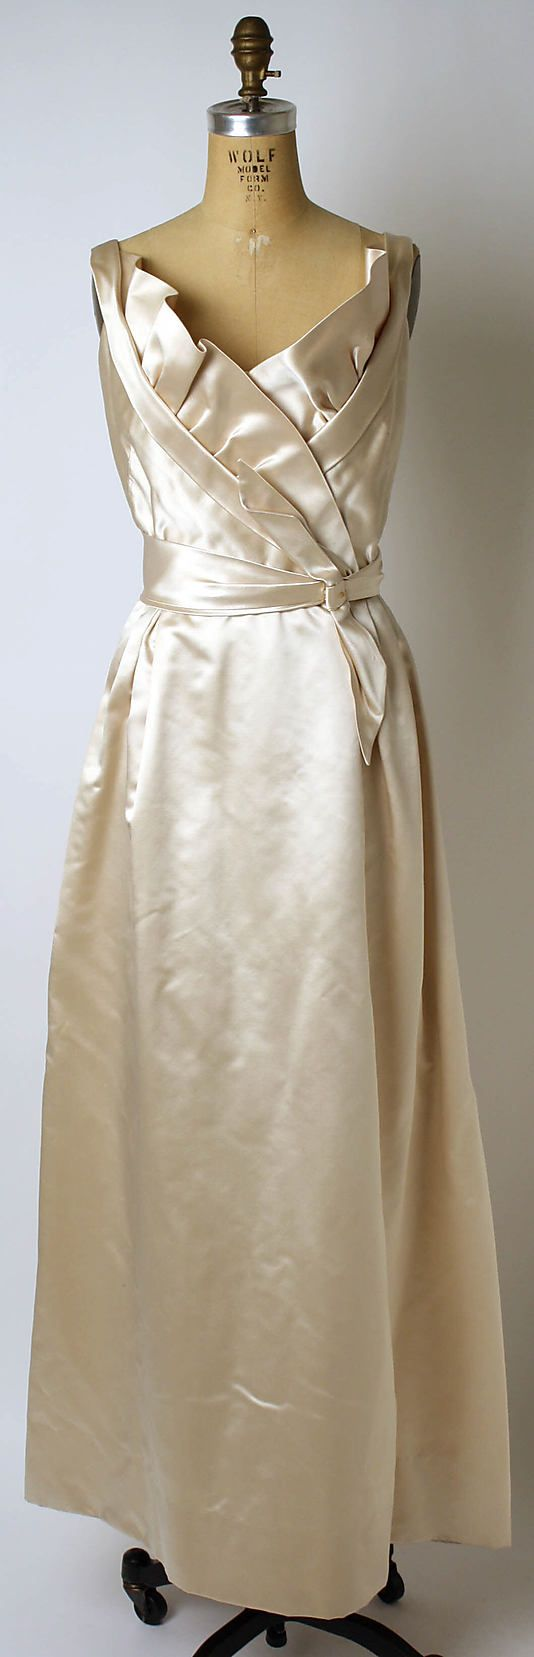 Christian Dior (French, 1905-1957). Evening dress, late 1940s. House of Dior (French, founded 1947). The Metropolitan Museum of Art, New York. Gift of Mrs. Gilbert W. Chapman (1974.156)